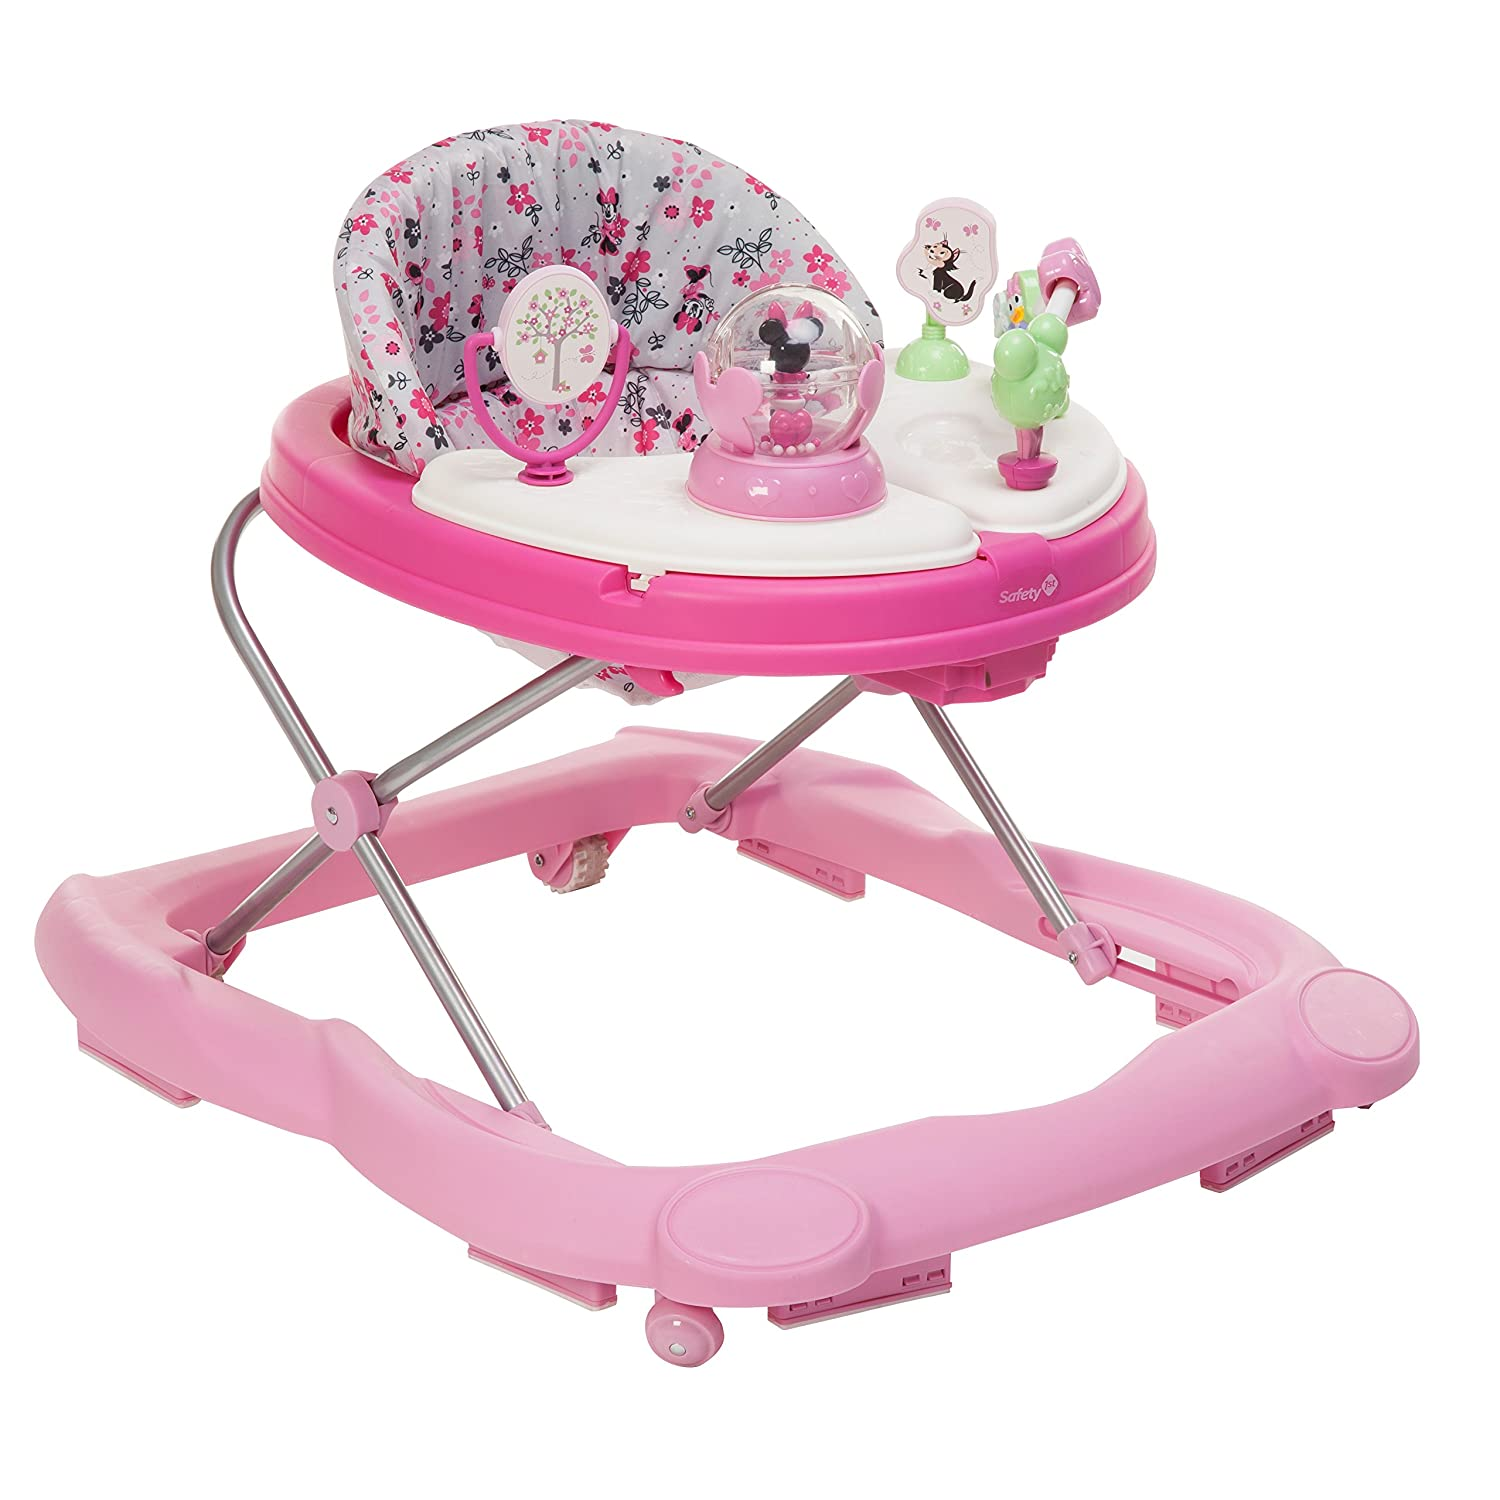 Baby Walkers For Girls Best Walking Toys For 1 Year Olds